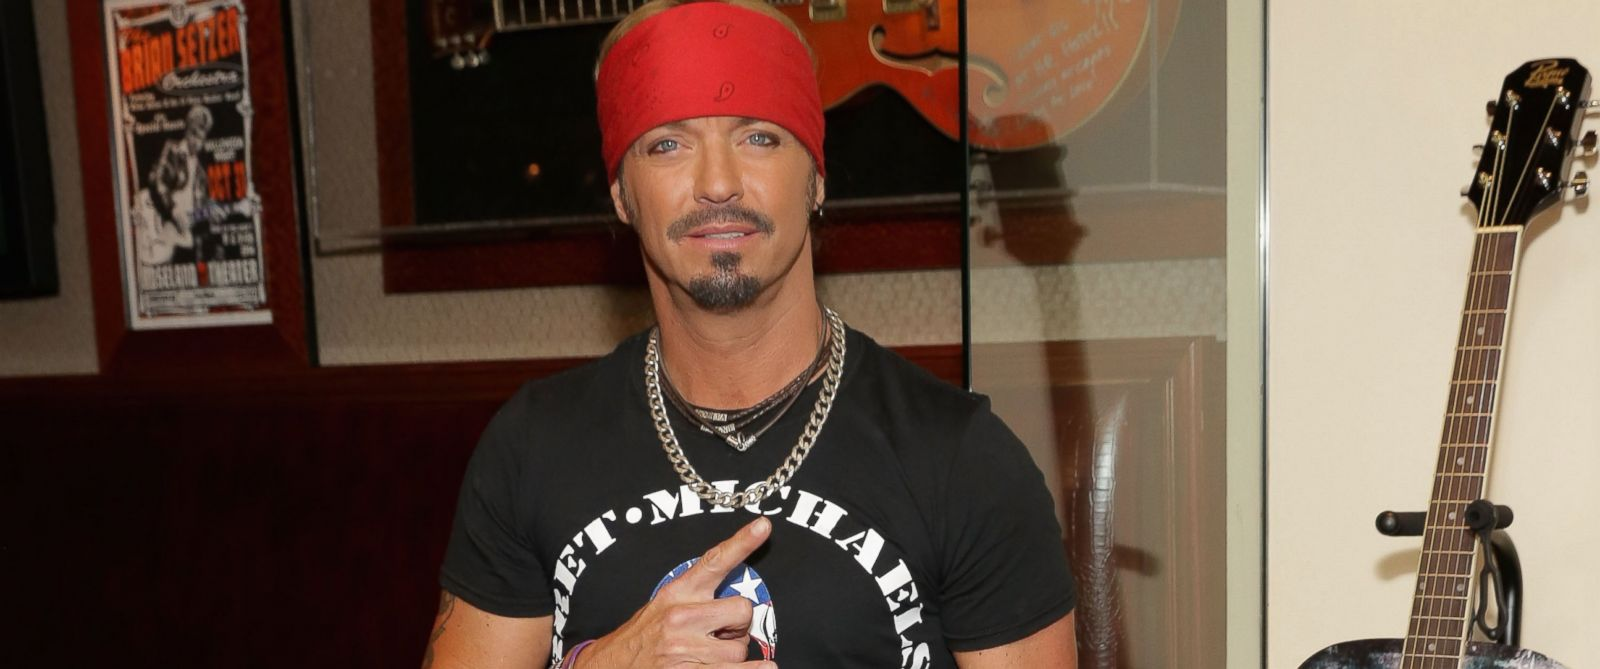 PHOTO: Singer/TV personality Bret Michaels attends the Bret Michaels guitar donation at Hard Rock Cafe New York, July 18, 2014 in New York City.